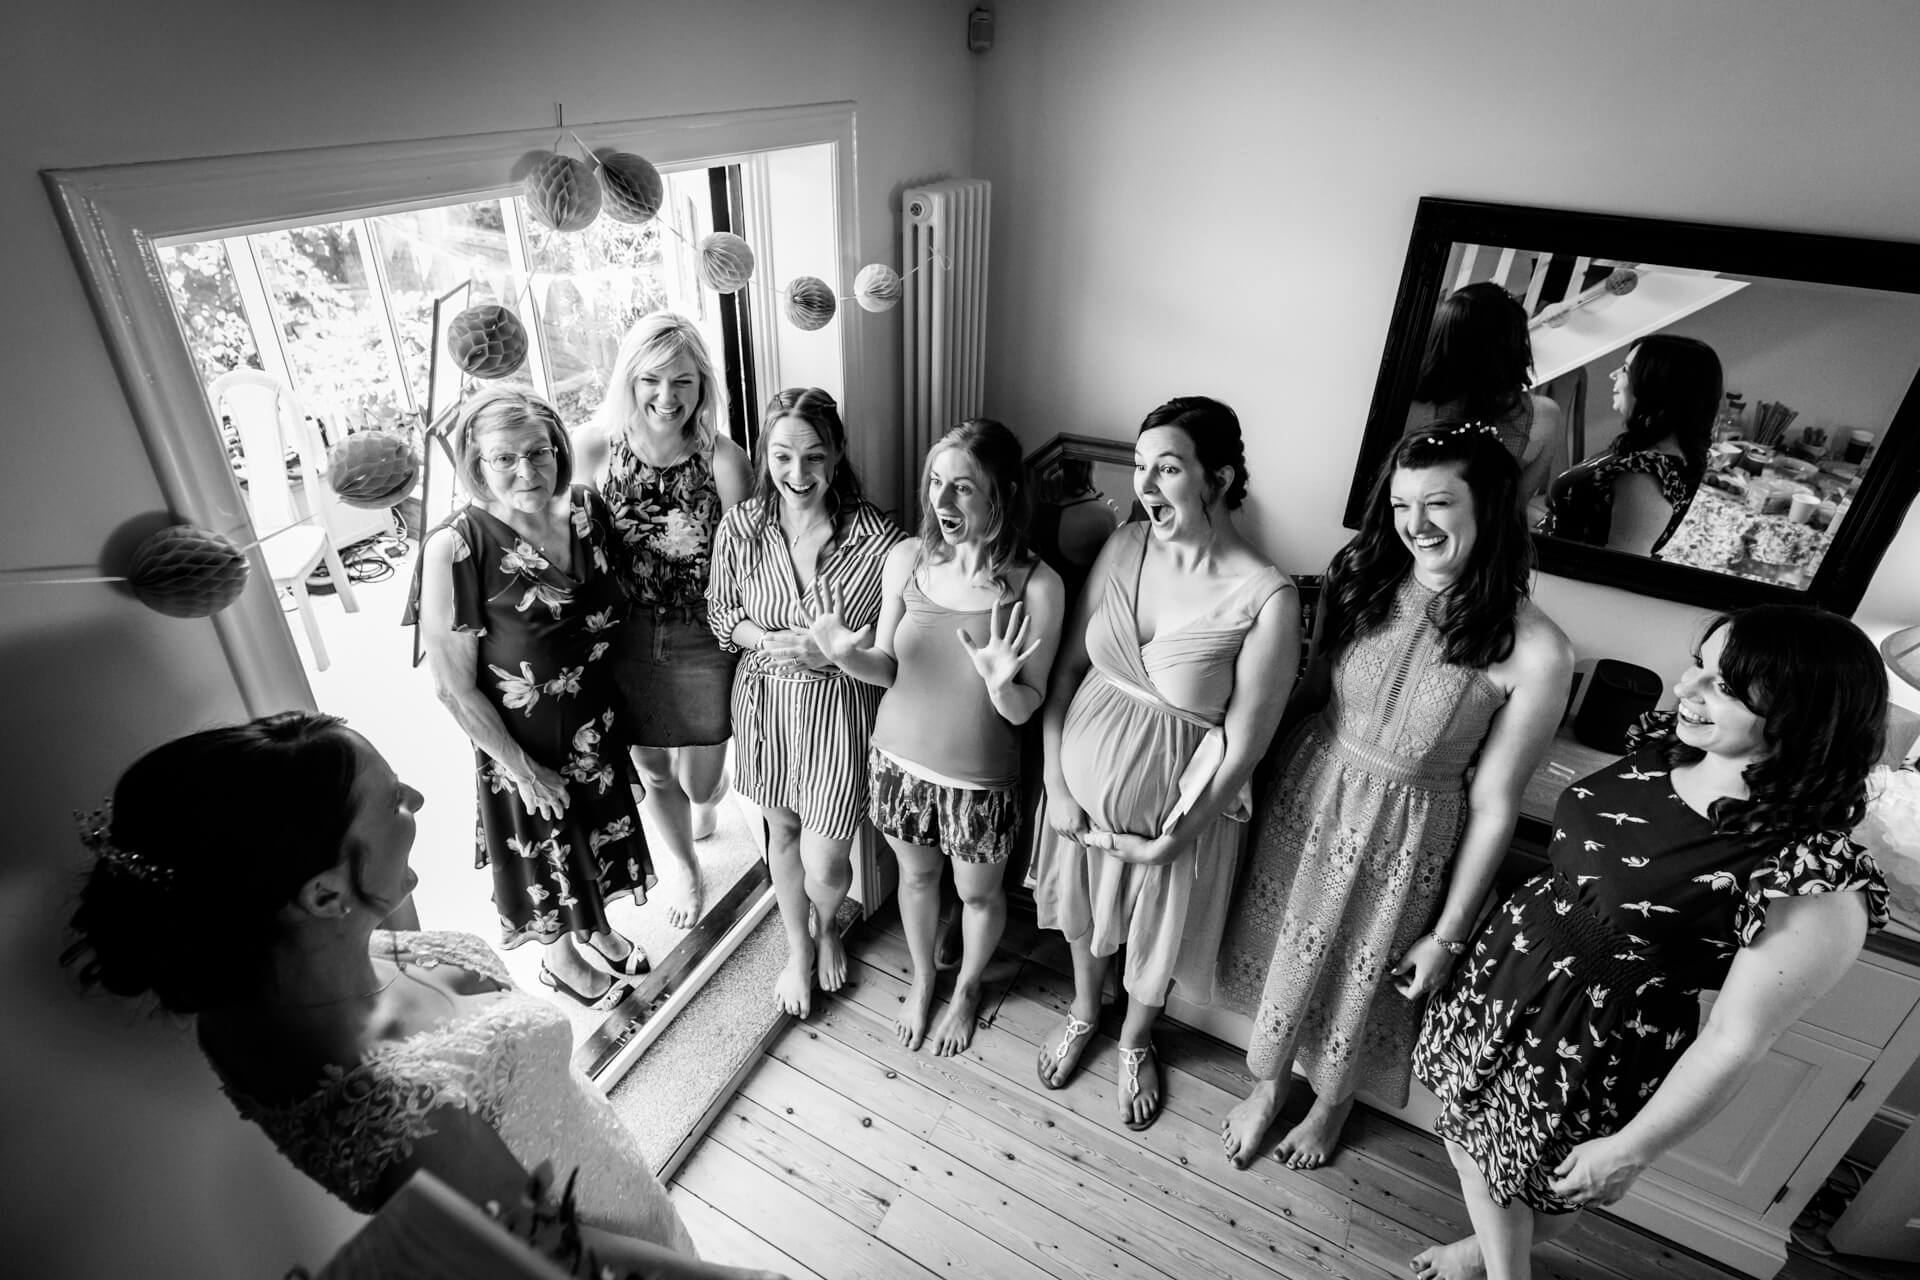 the bridal party shrieking with delight upon seeing the bride in her dress